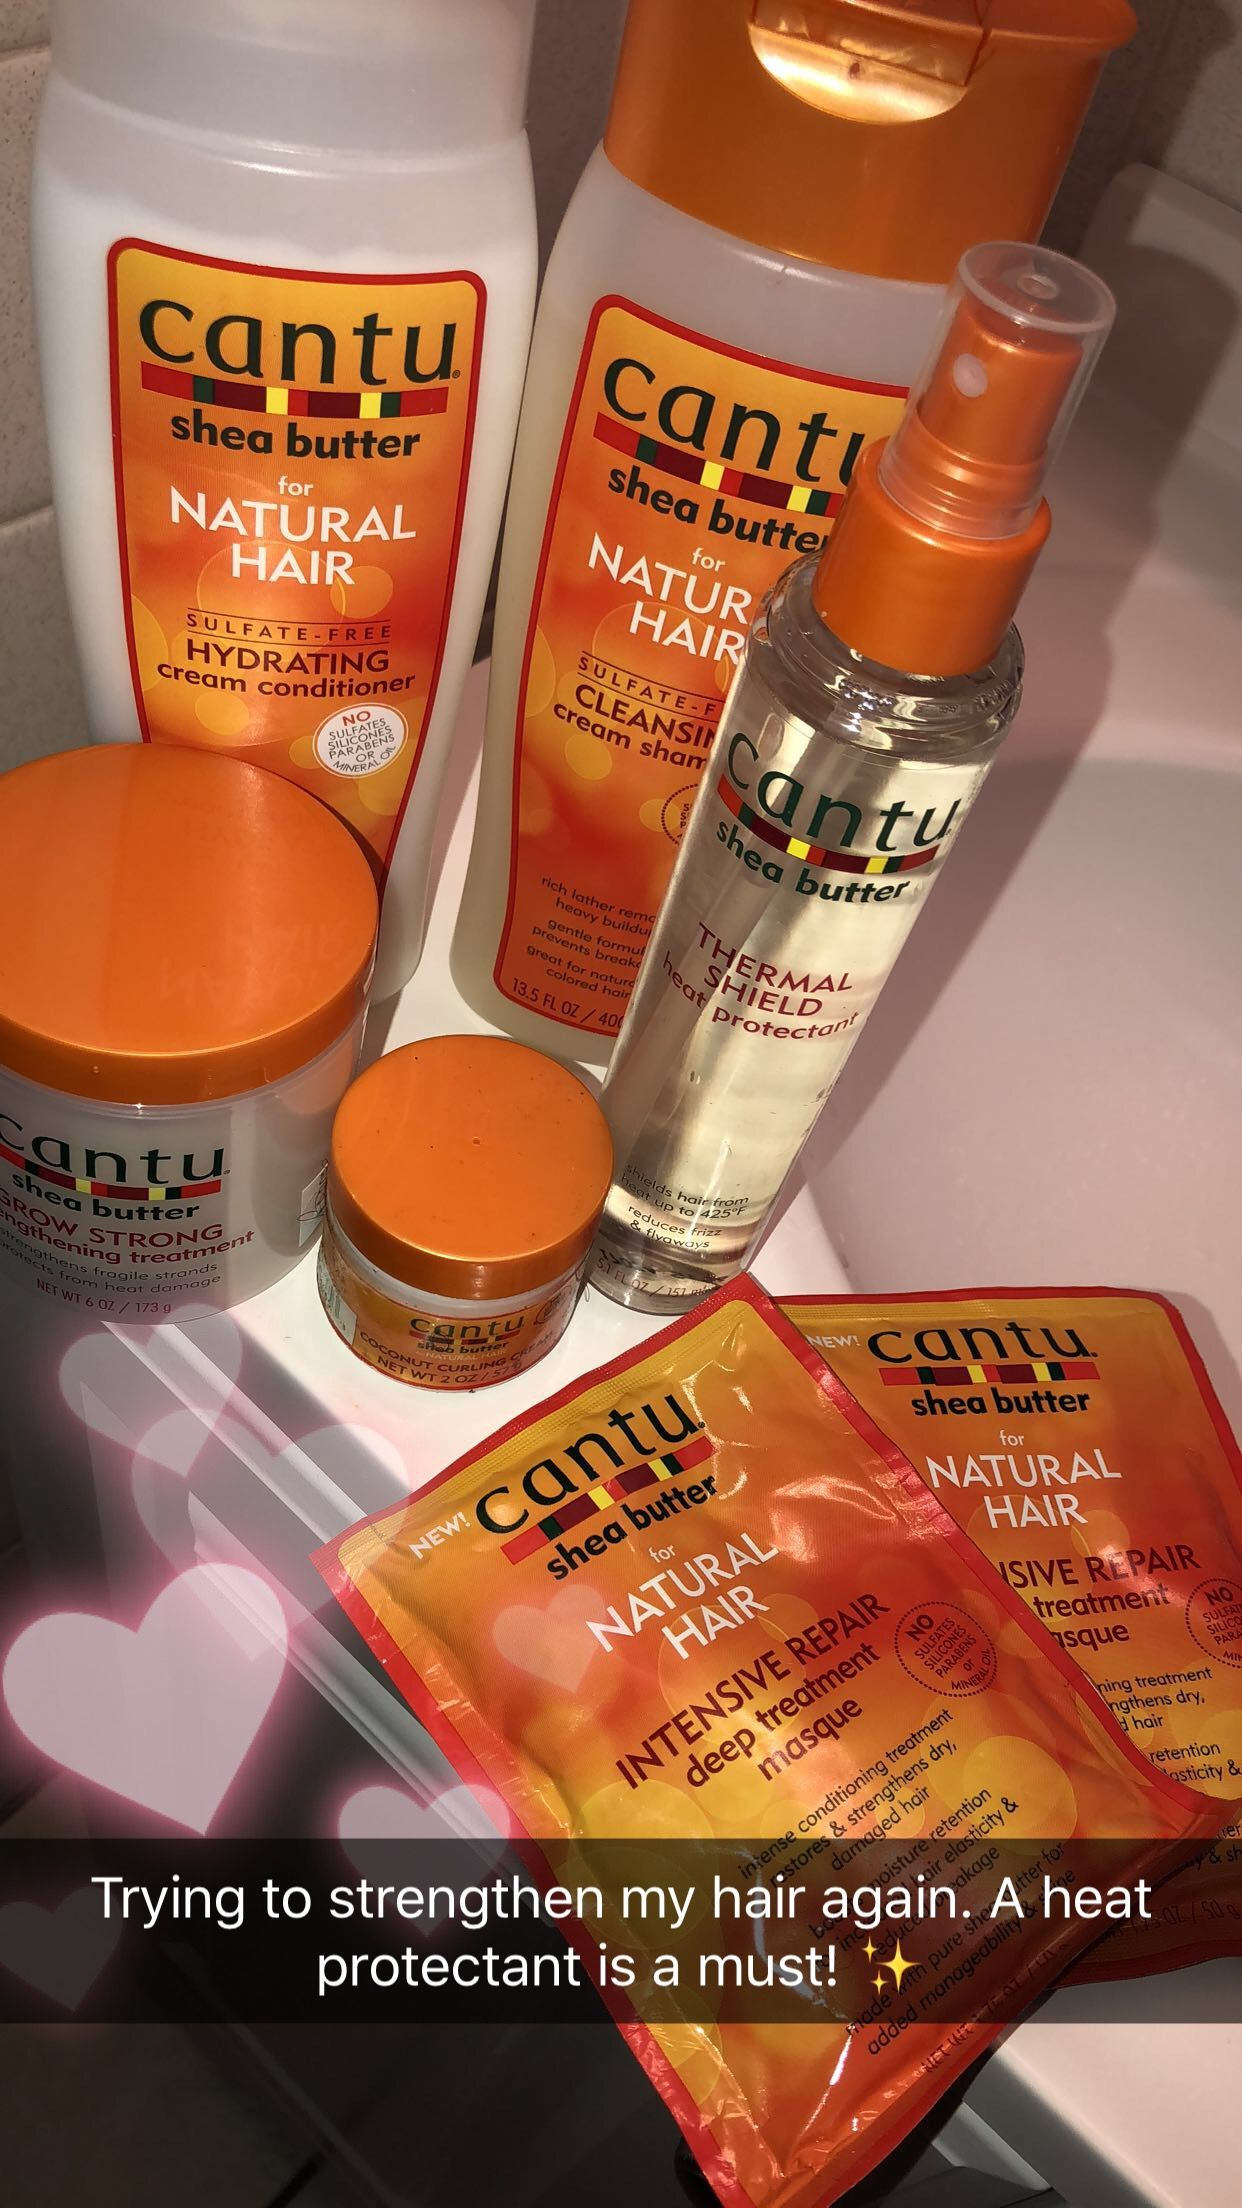 Black Girl Hair Care Had To Get The Entire Product Line Natural Hair Care Tips Curly Hair Care Natural Hair Styles